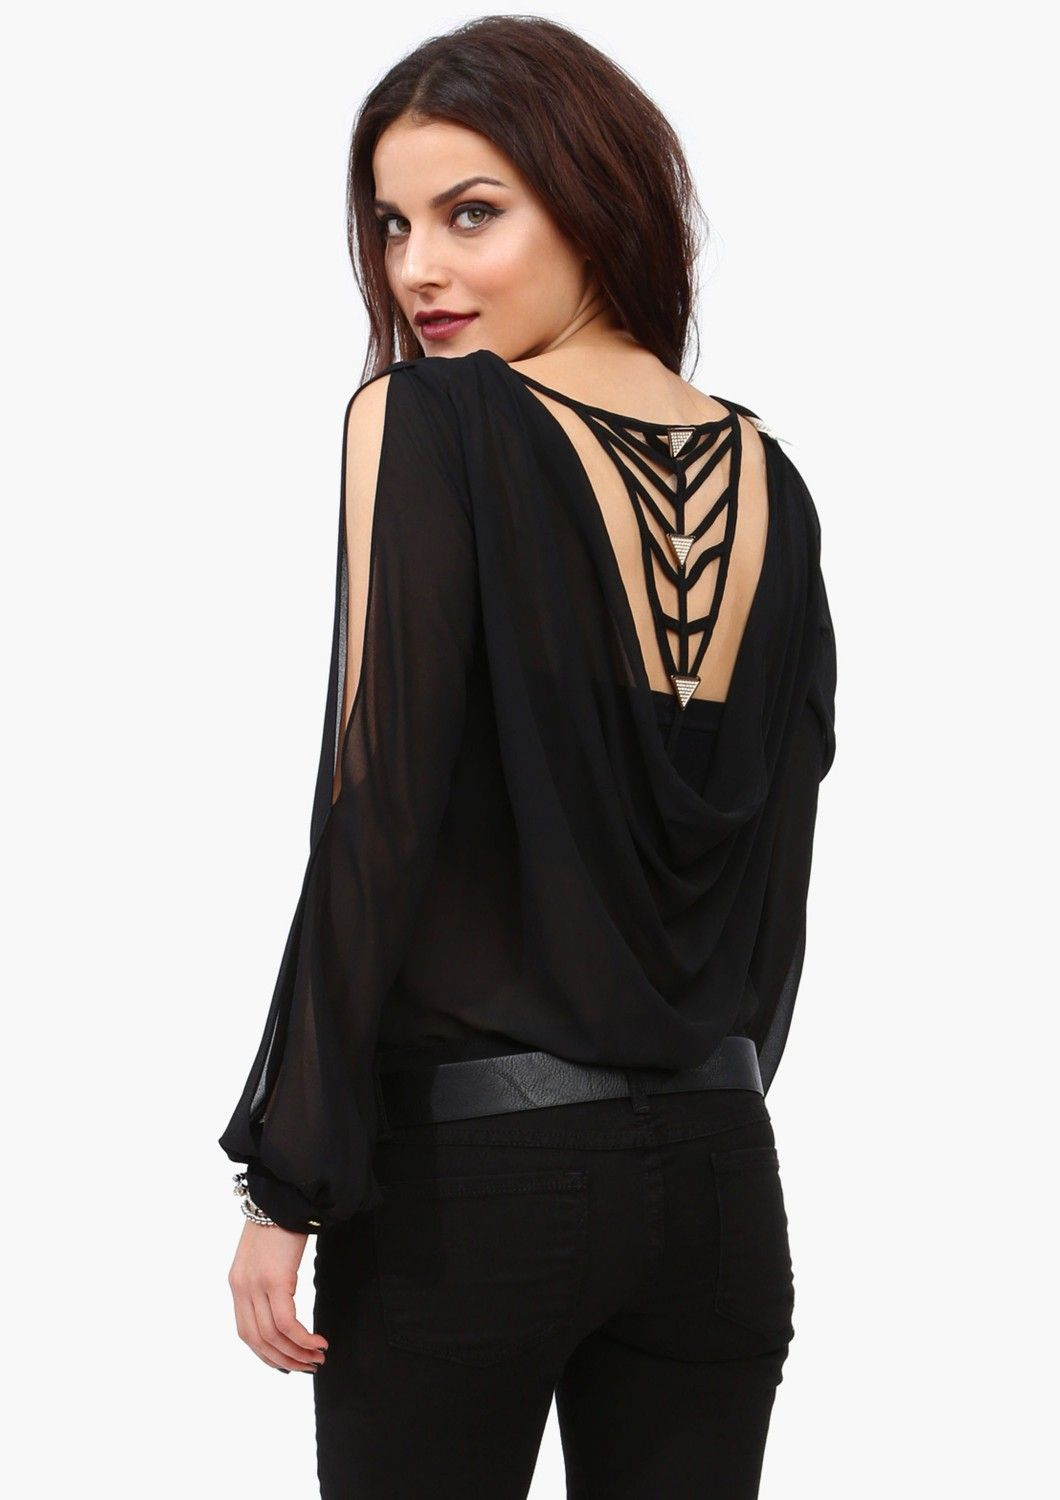 f19d8152b0e Cute Detailing on this Top. Necessary Clothing ...